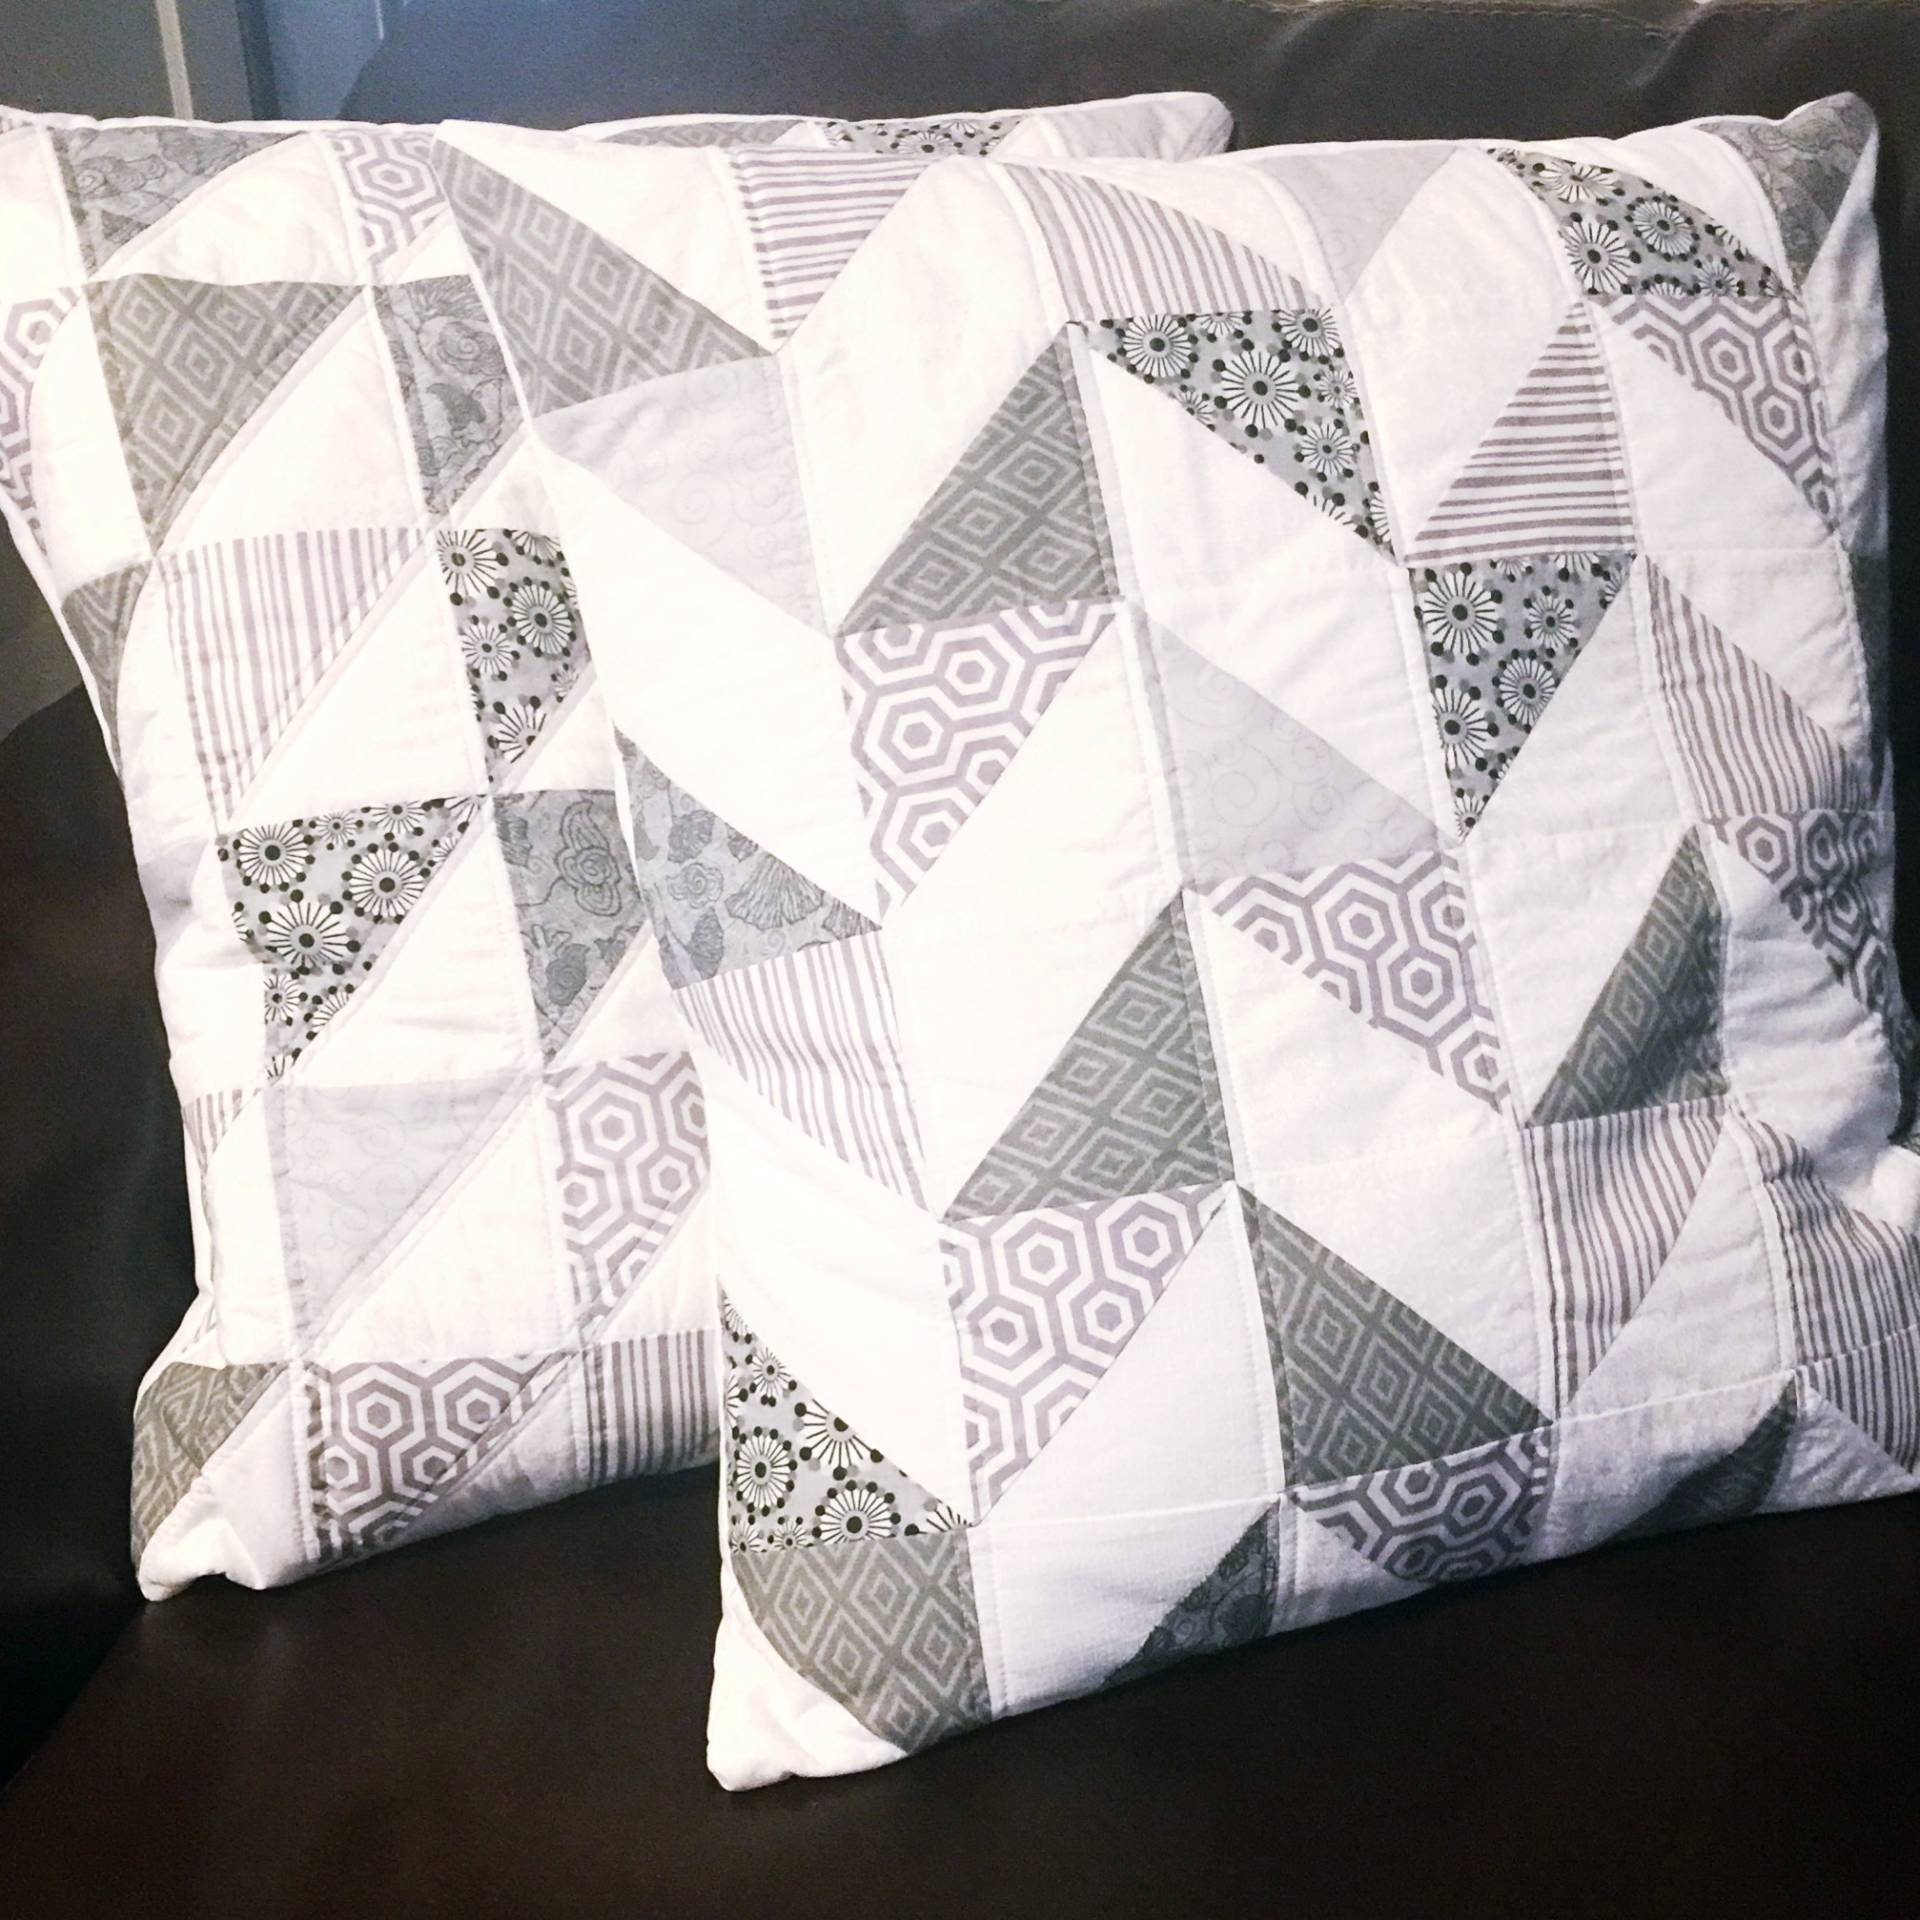 DIY Quilted Pillow Covers tutorial on MostlySewing.com : quilted pillow covers - Adamdwight.com